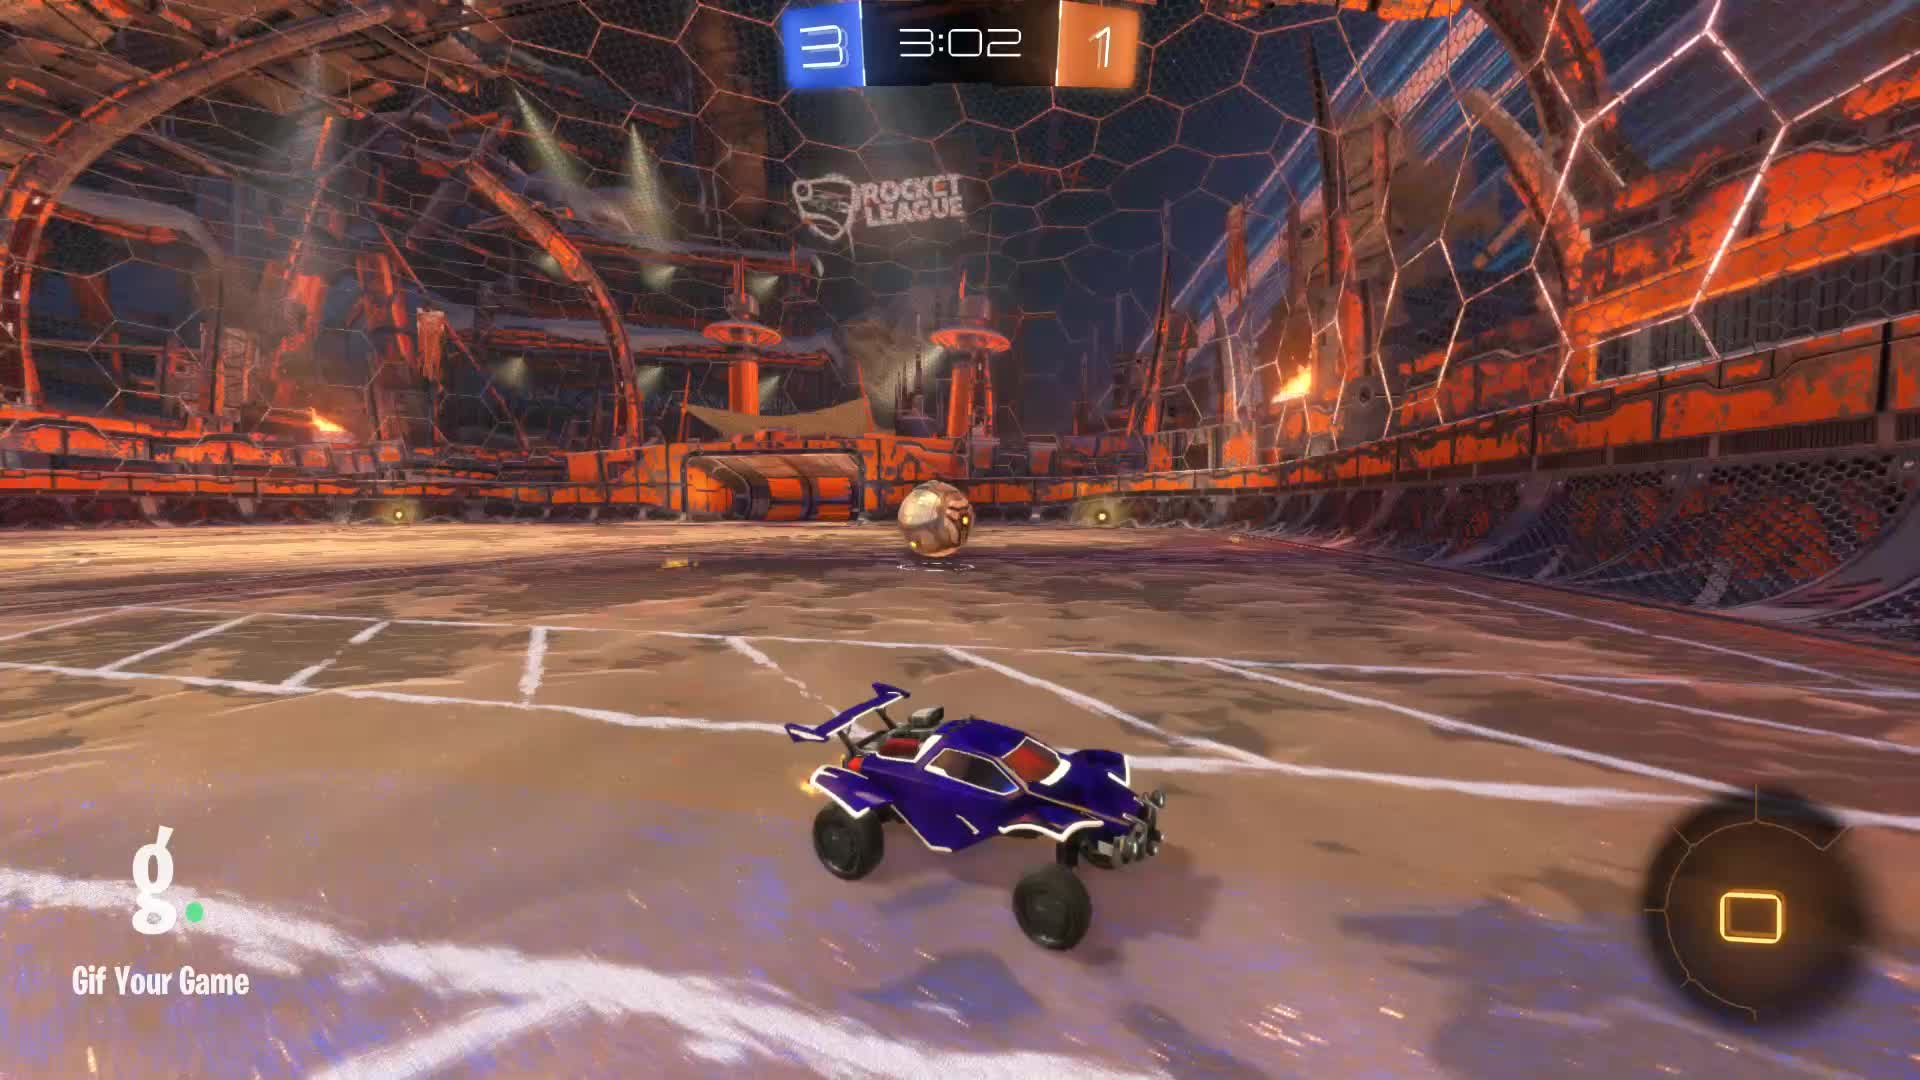 Gif Your Game, GifYourGame, Goal, Linux Cow | Ceiling shots only?, Rocket League, RocketLeague, Goal 5: Linux Cow | Ceiling shots only? GIFs